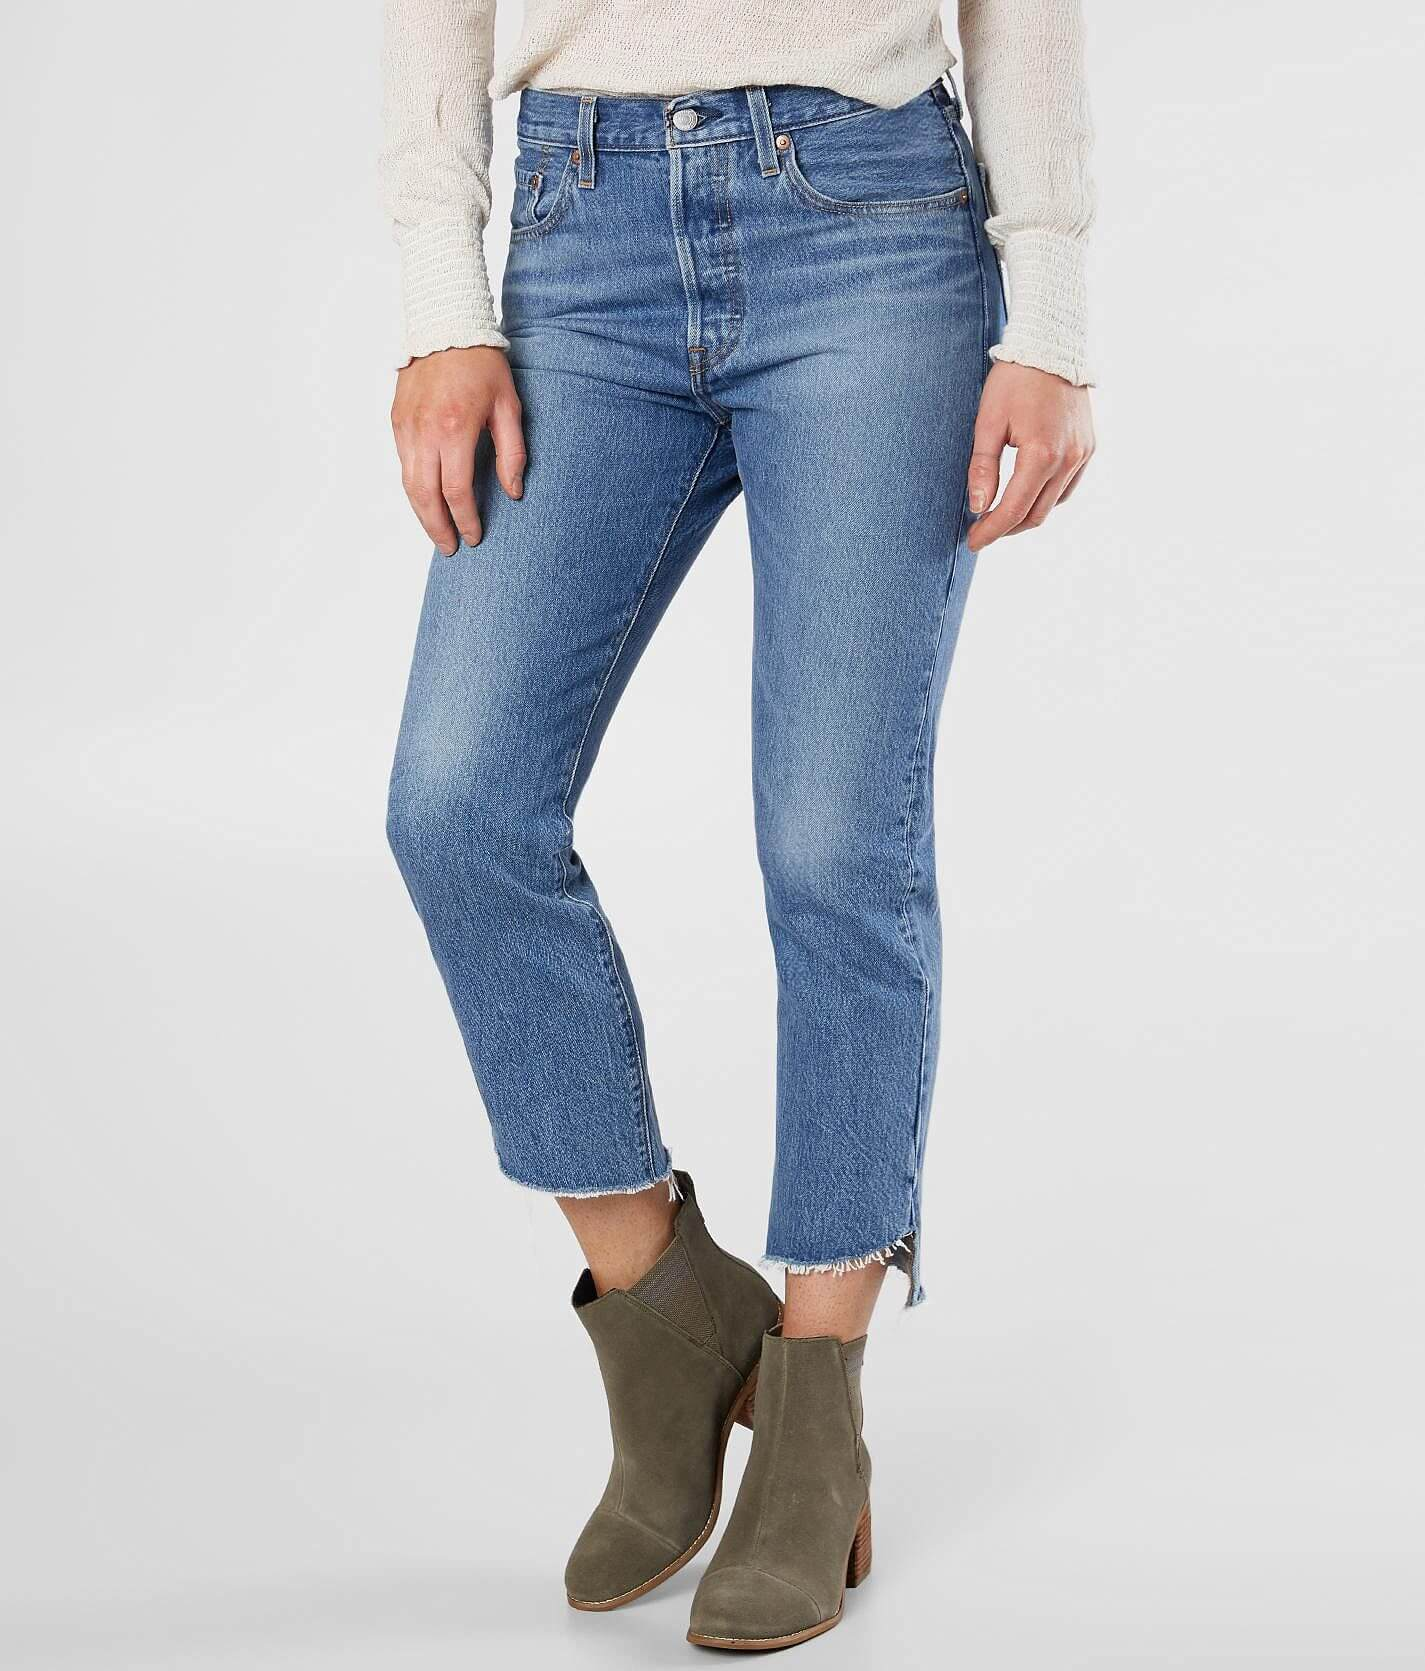 Where can you find non stretch jeans?